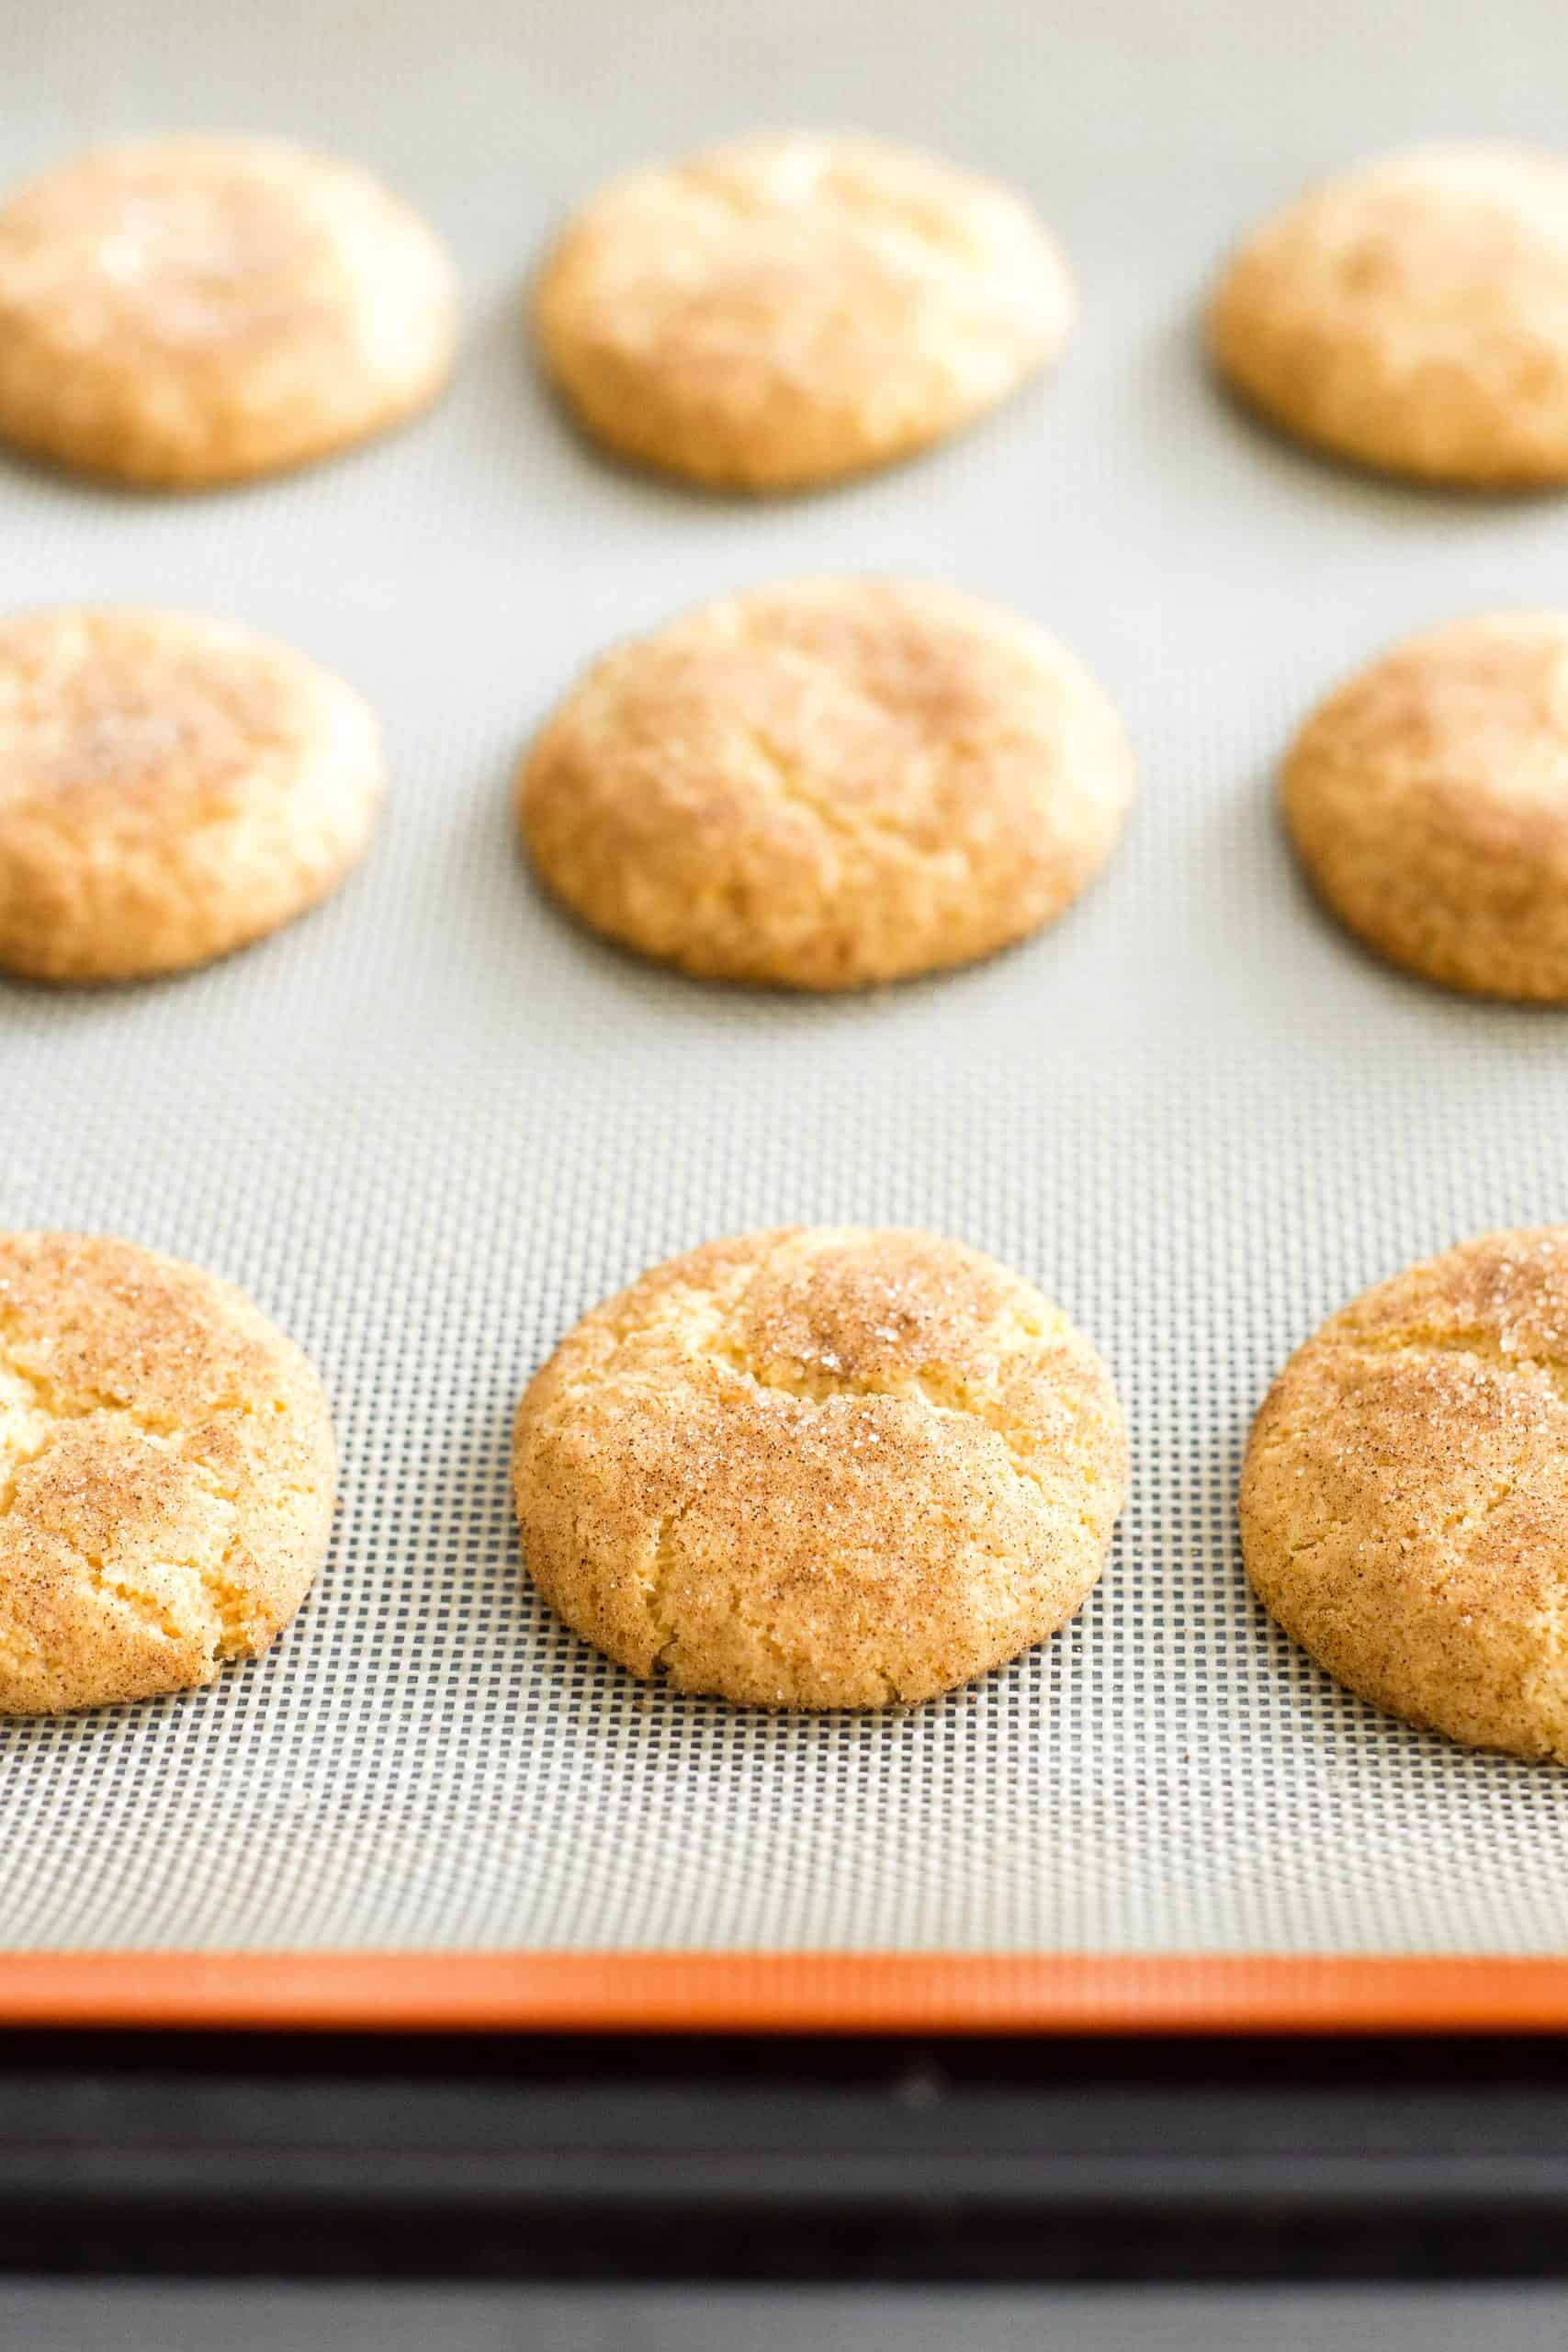 Freshly baked snickerdoodle cookies on a baking sheet.